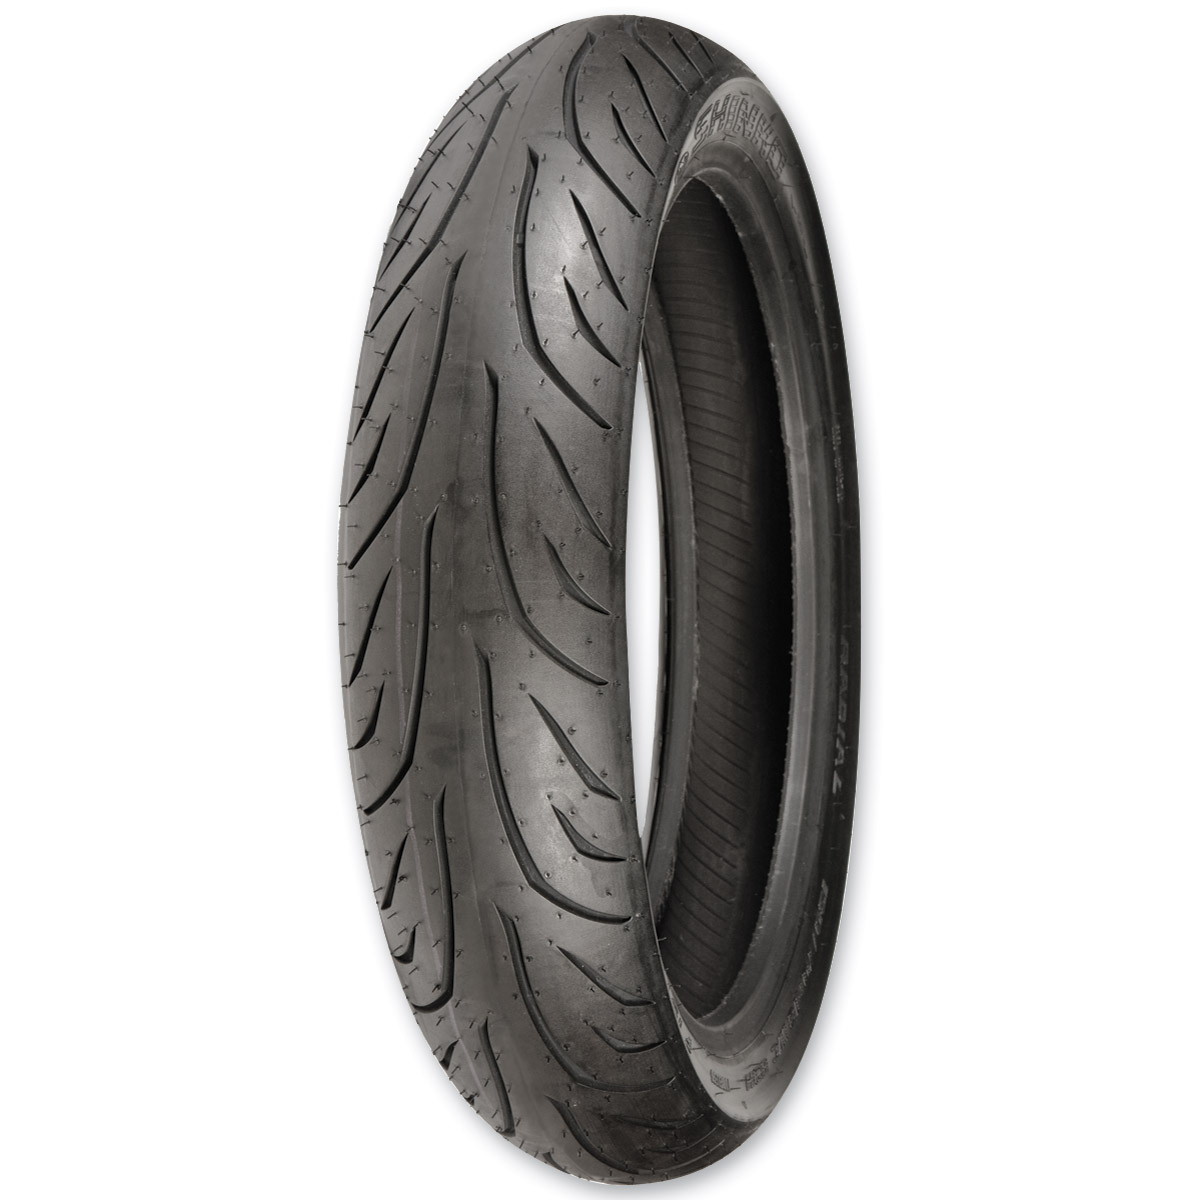 Shinko SE890 Journey 150/80R17 Front Tire